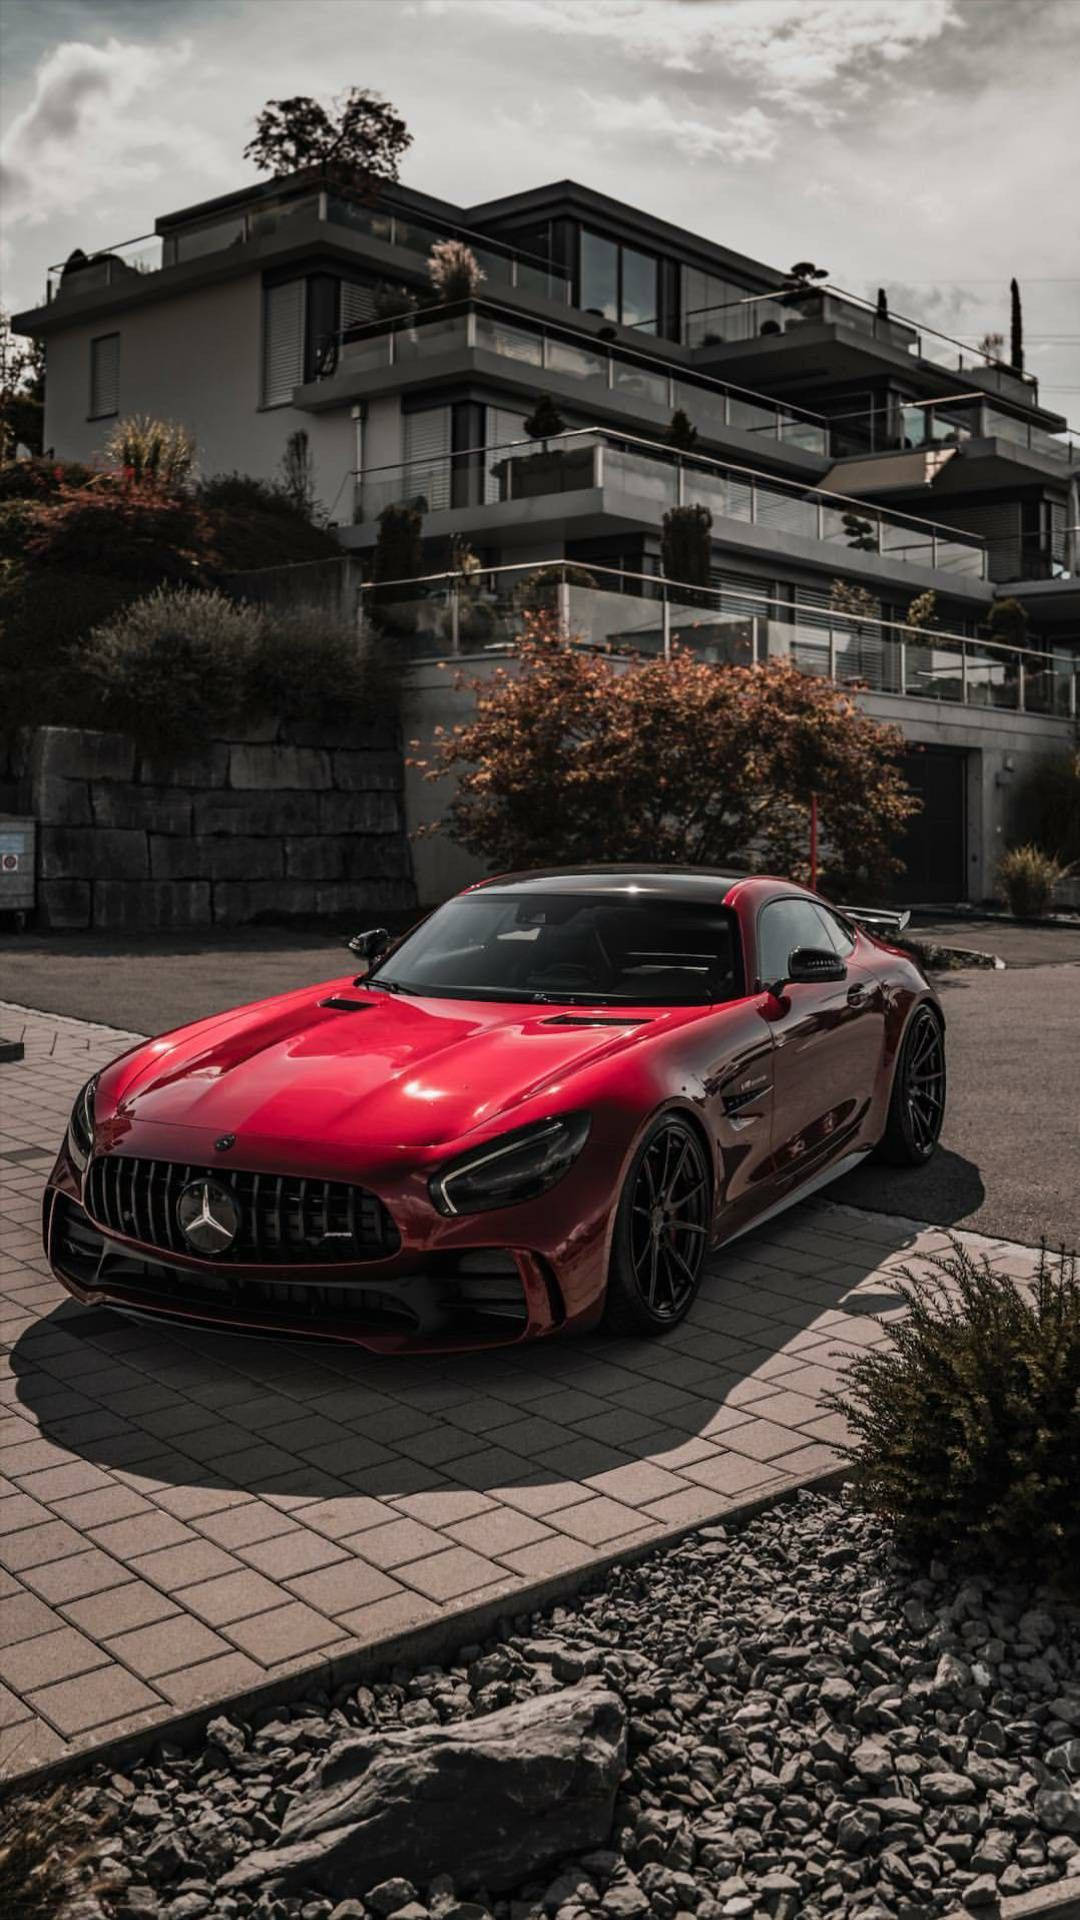 Mercedes Domecq Style Mercedes Domecq In 2020 Mercedes Amg Gt R Mercedes Car Mercedes Benz Cars